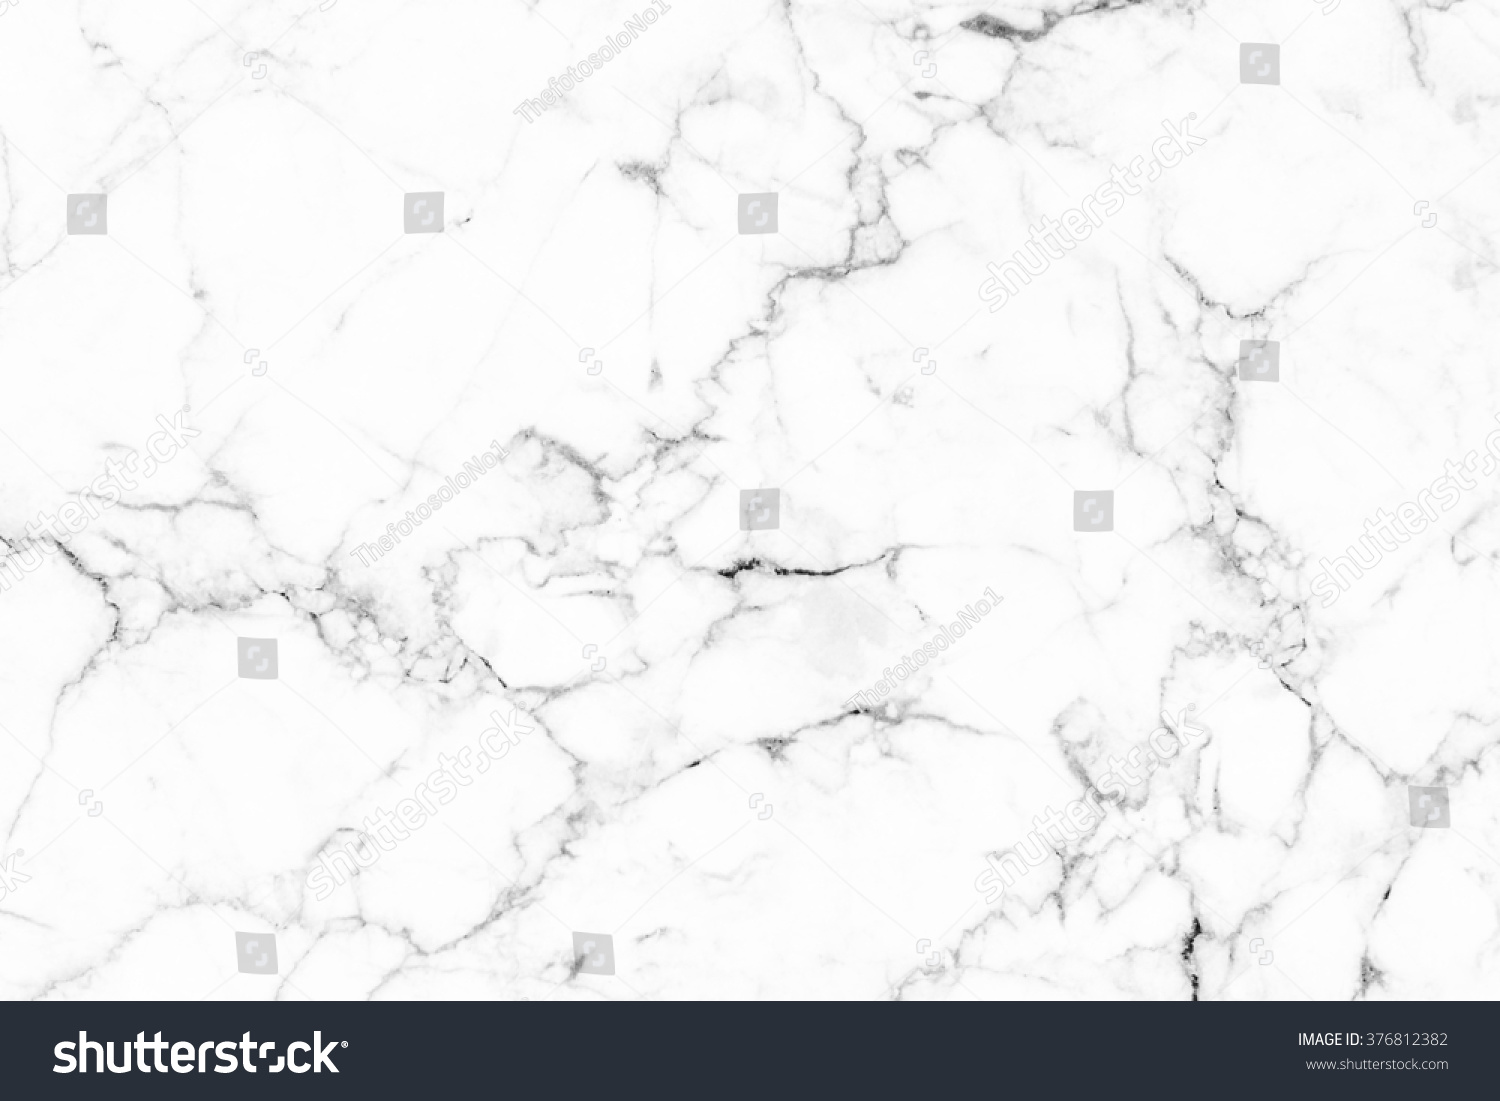 White marble texture with natural pattern for background or design art